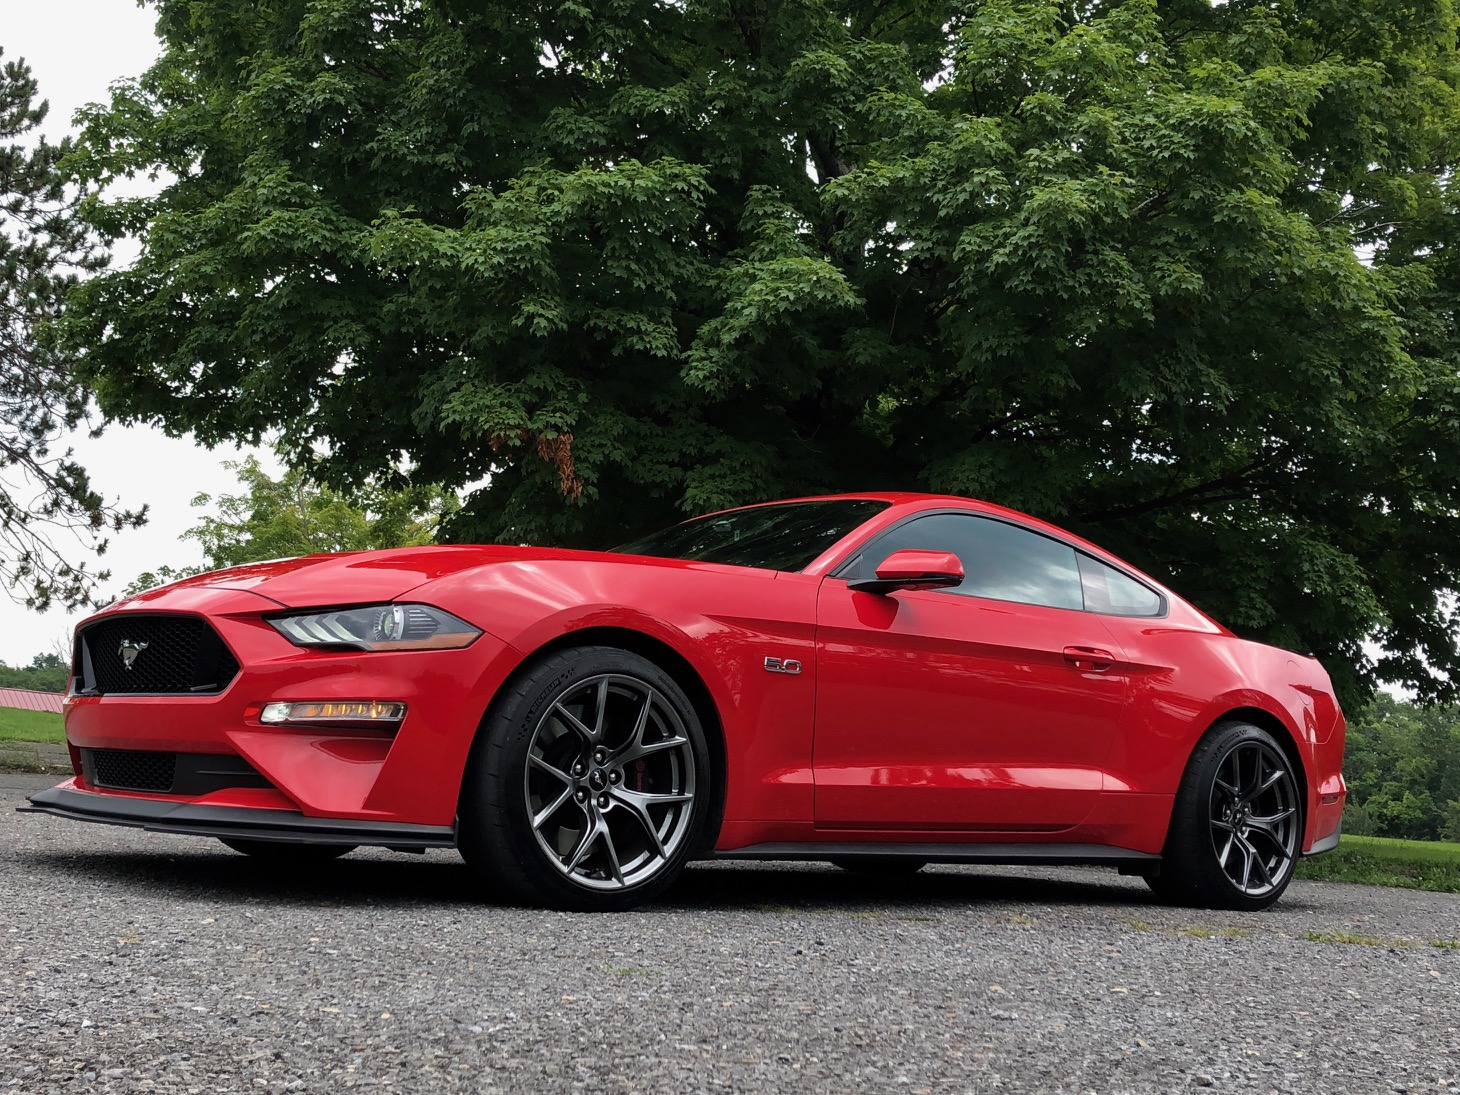 Ford mustang gt pp2 2018 review by auto critic steve hammes